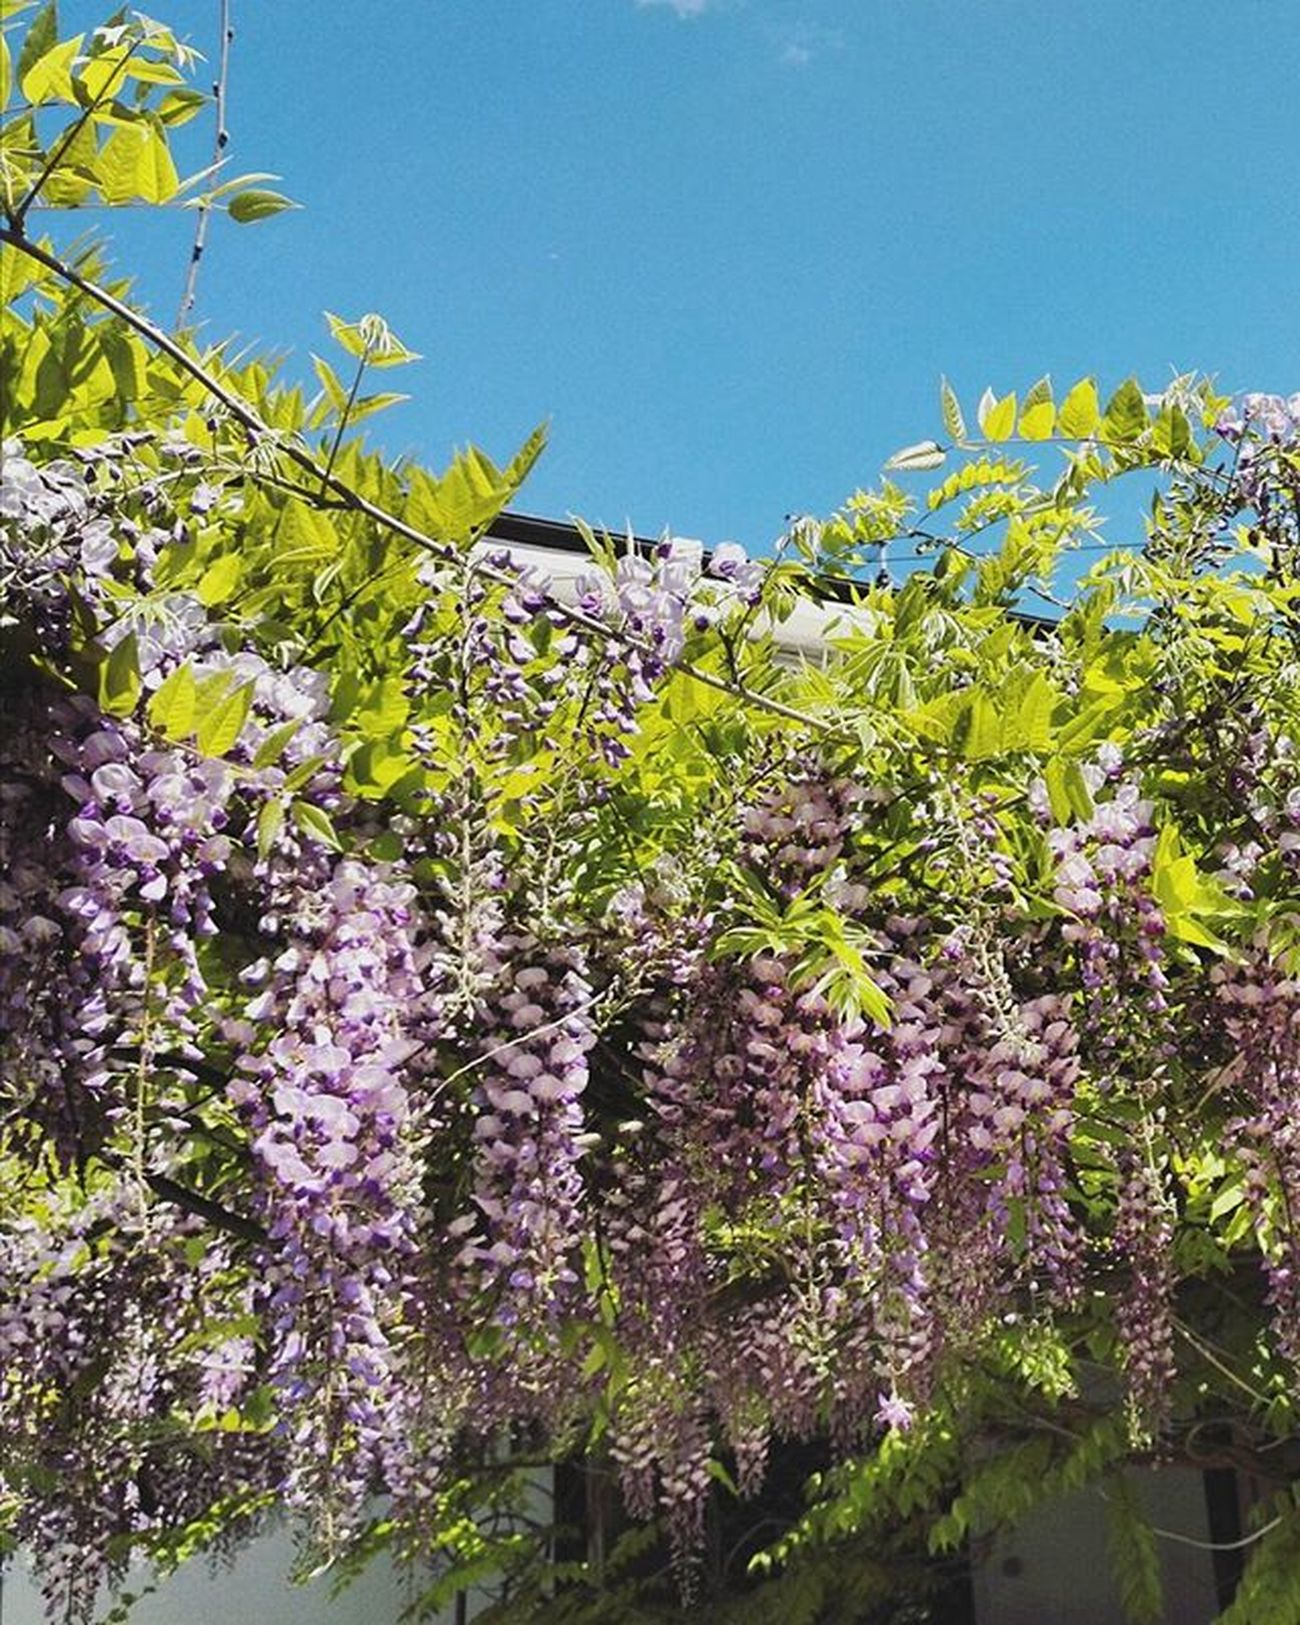 Flowers Art Nature Flower Wisteria Glicine Countryside Branches Spring Landscape Italy Sunny Colorful Vscocam Photography Followme Like4like Likes L4l Likes4likes Photooftheday Love Likeforlike Likesforlikes Instagood likeall likealways liking instalike